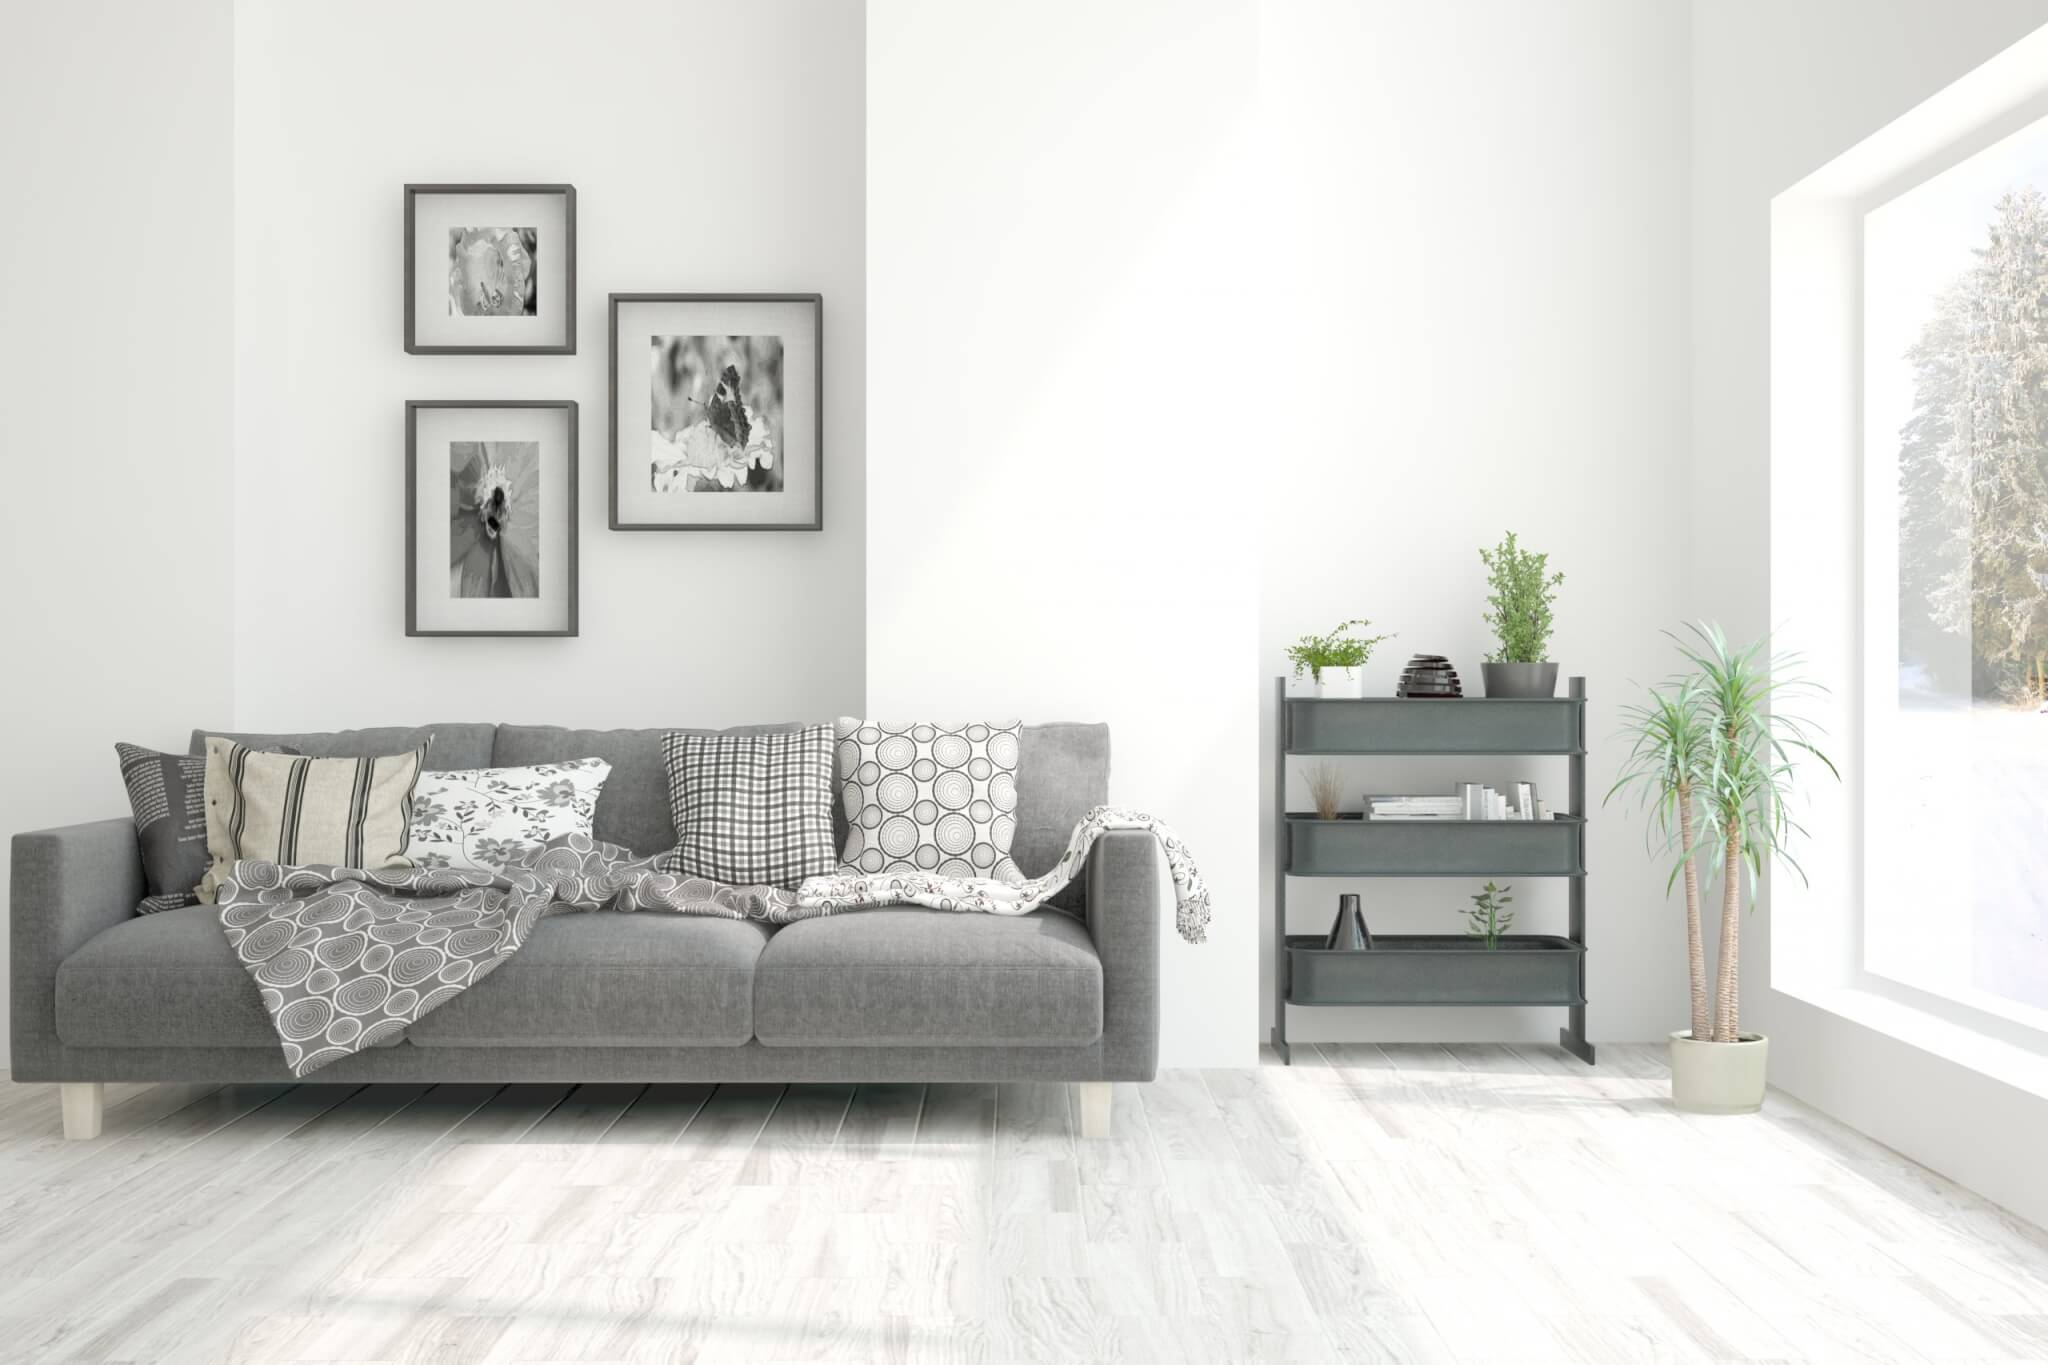 Consider the type of guests you'd like to host in your short-term rental properties when choosing your interior design